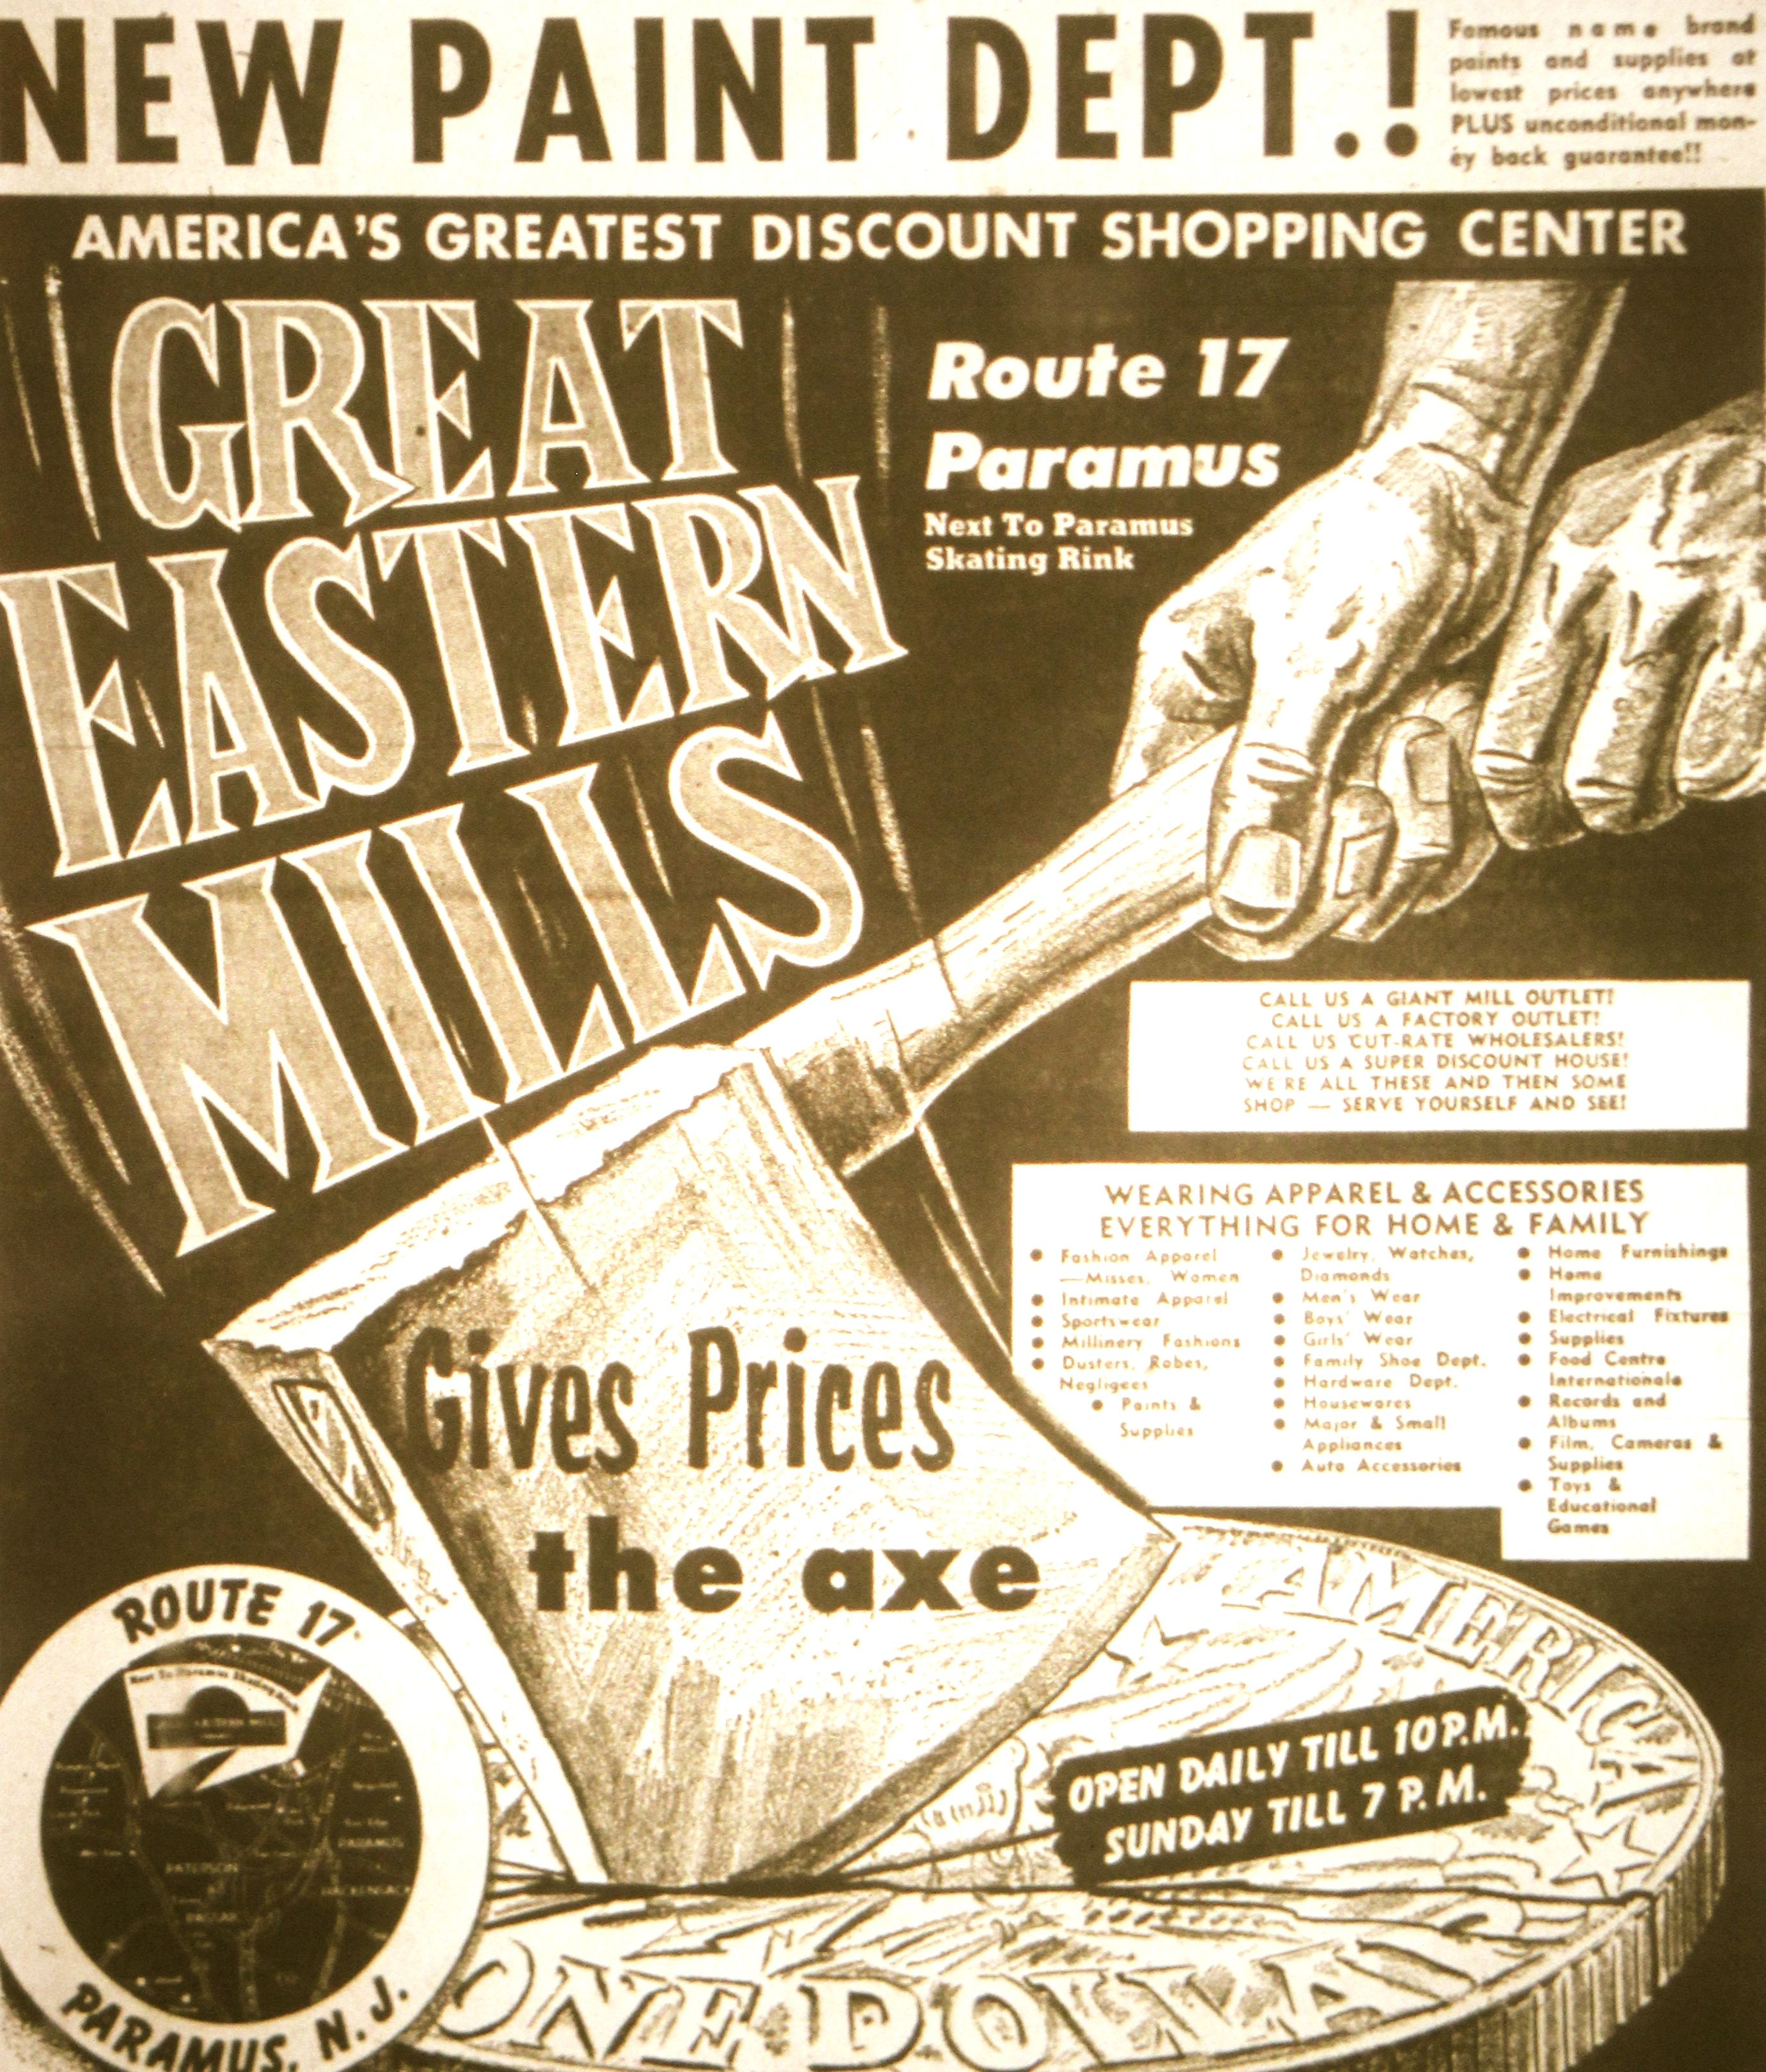 grand opening channel lumber in middletown nj early 70 s great eastern mills ad from 1957